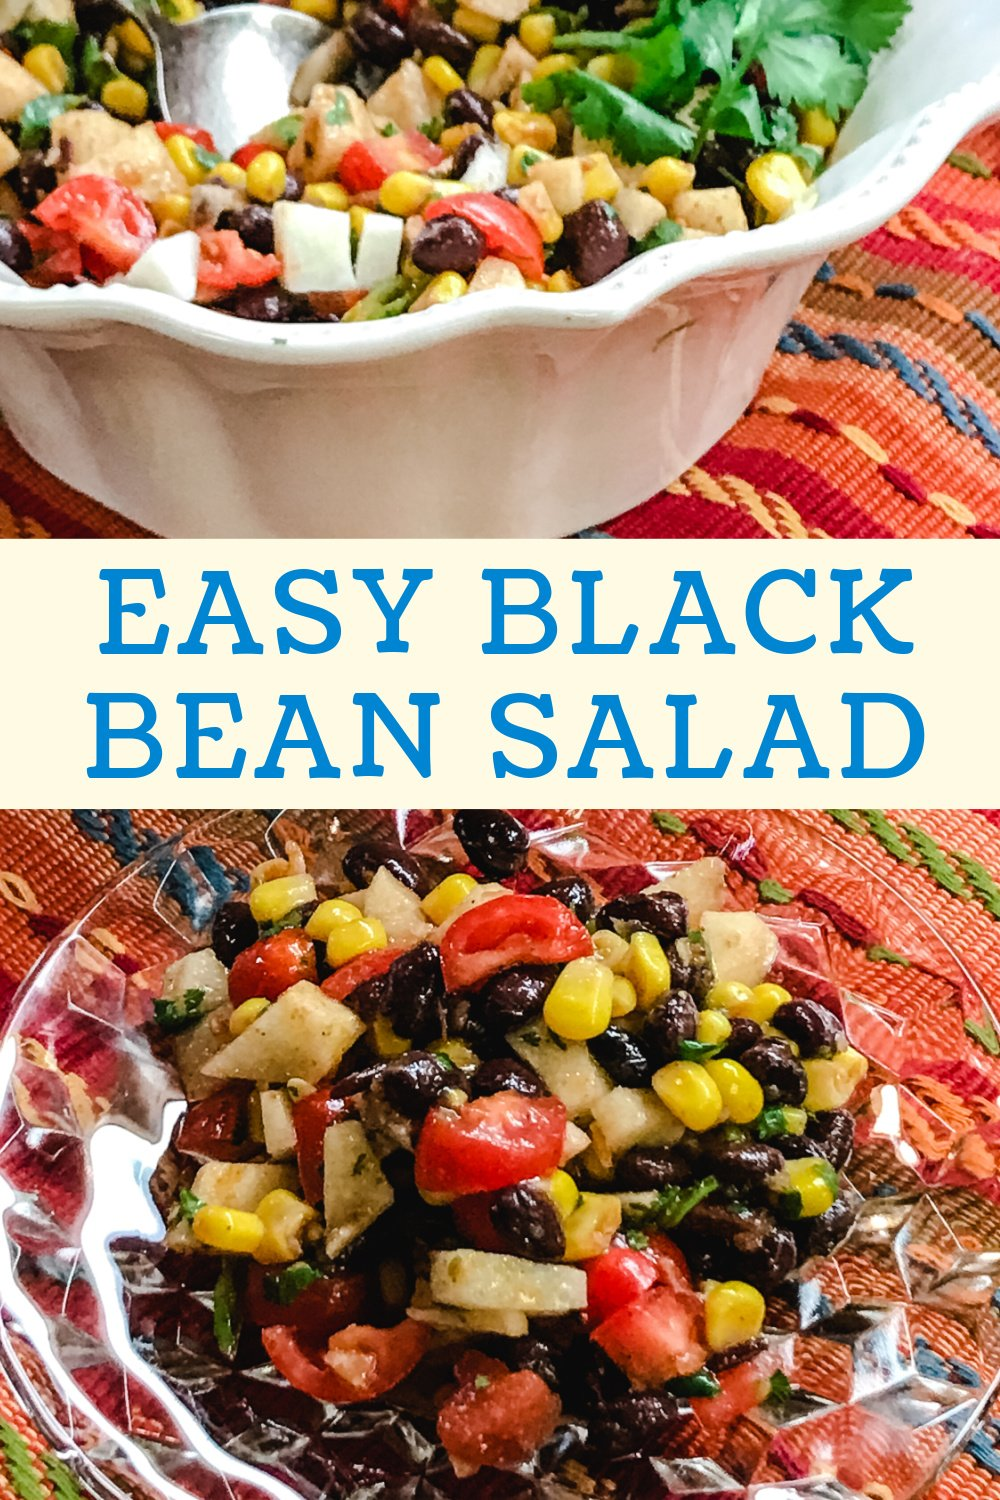 Black bean salad in a serving bowl and also on a plate.